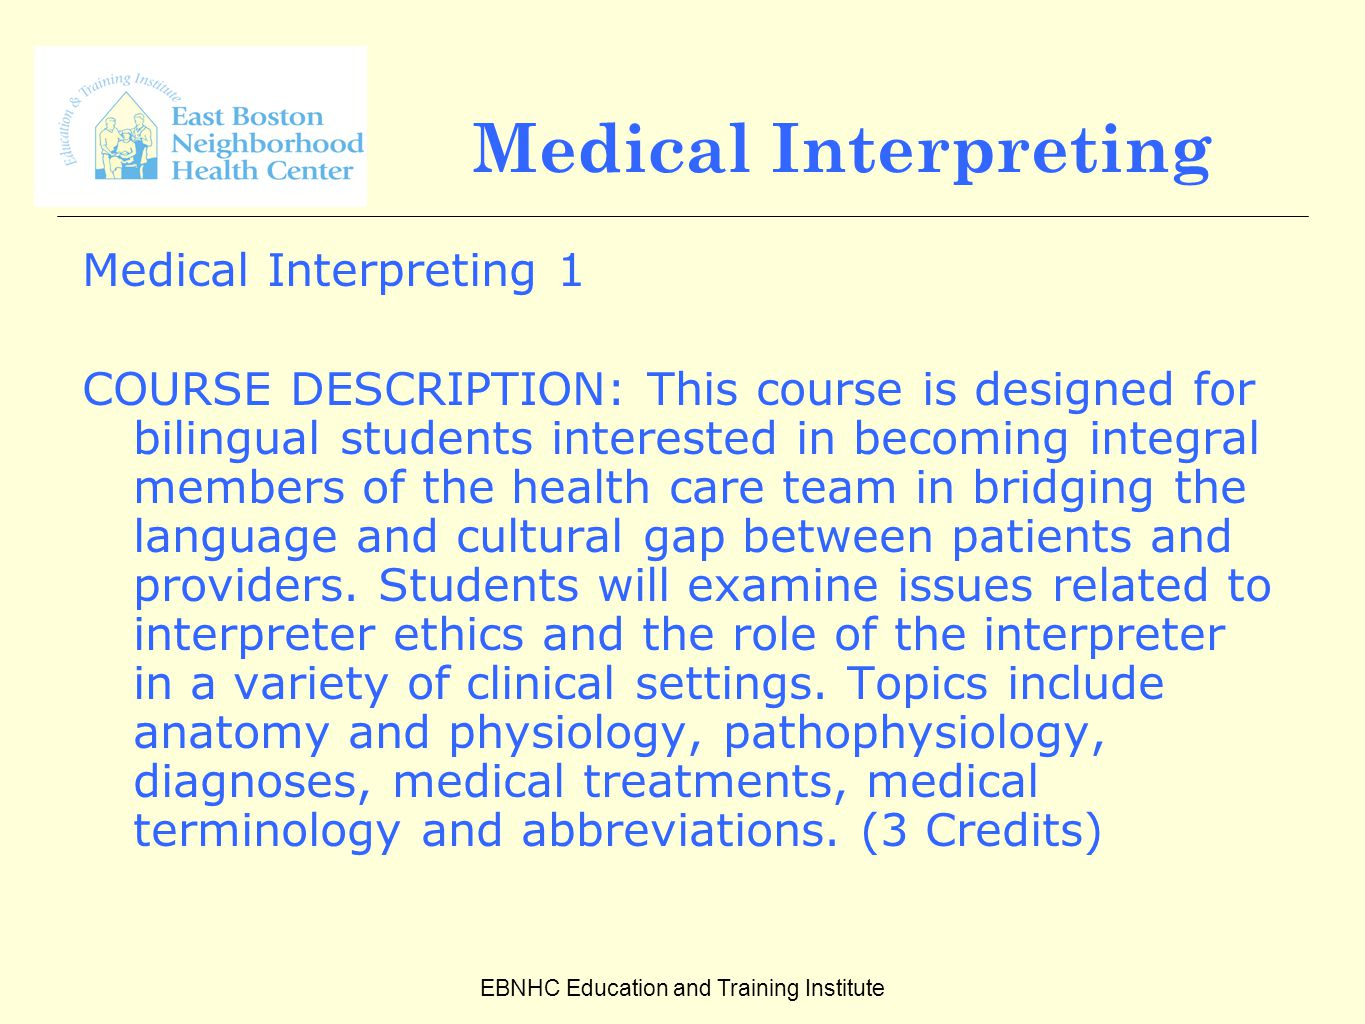 EBNHC Education and Training Institute Medical Interpreting Medical Interpreting 1 COURSE DESCRIPTION: This course is designed for bilingual students interested in becoming integral members of the health care team in bridging the language and cultural gap between patients and providers.